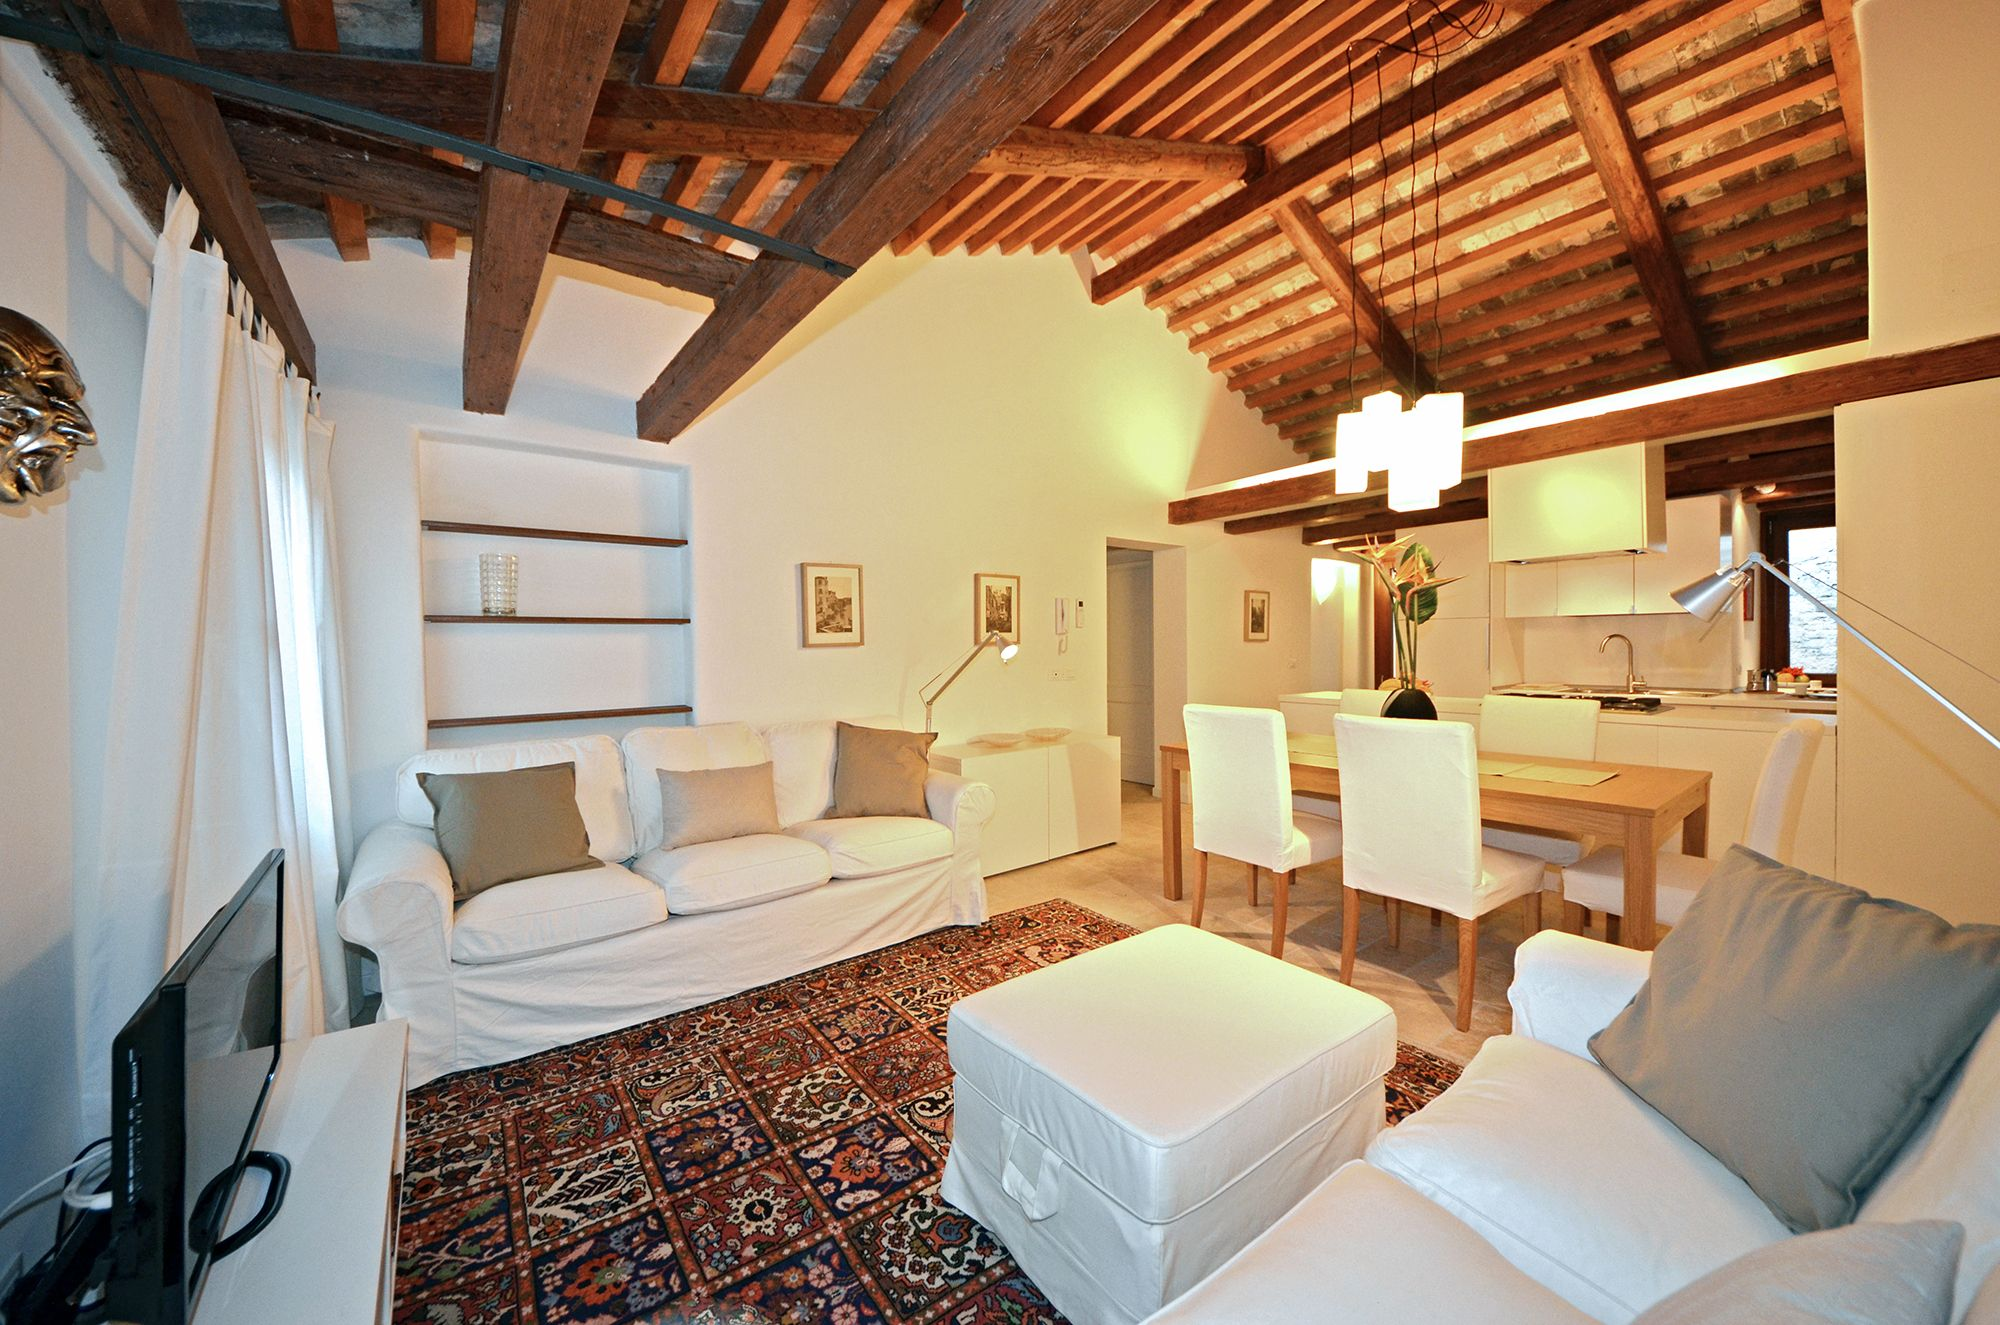 spacious living room with antique wooden beams